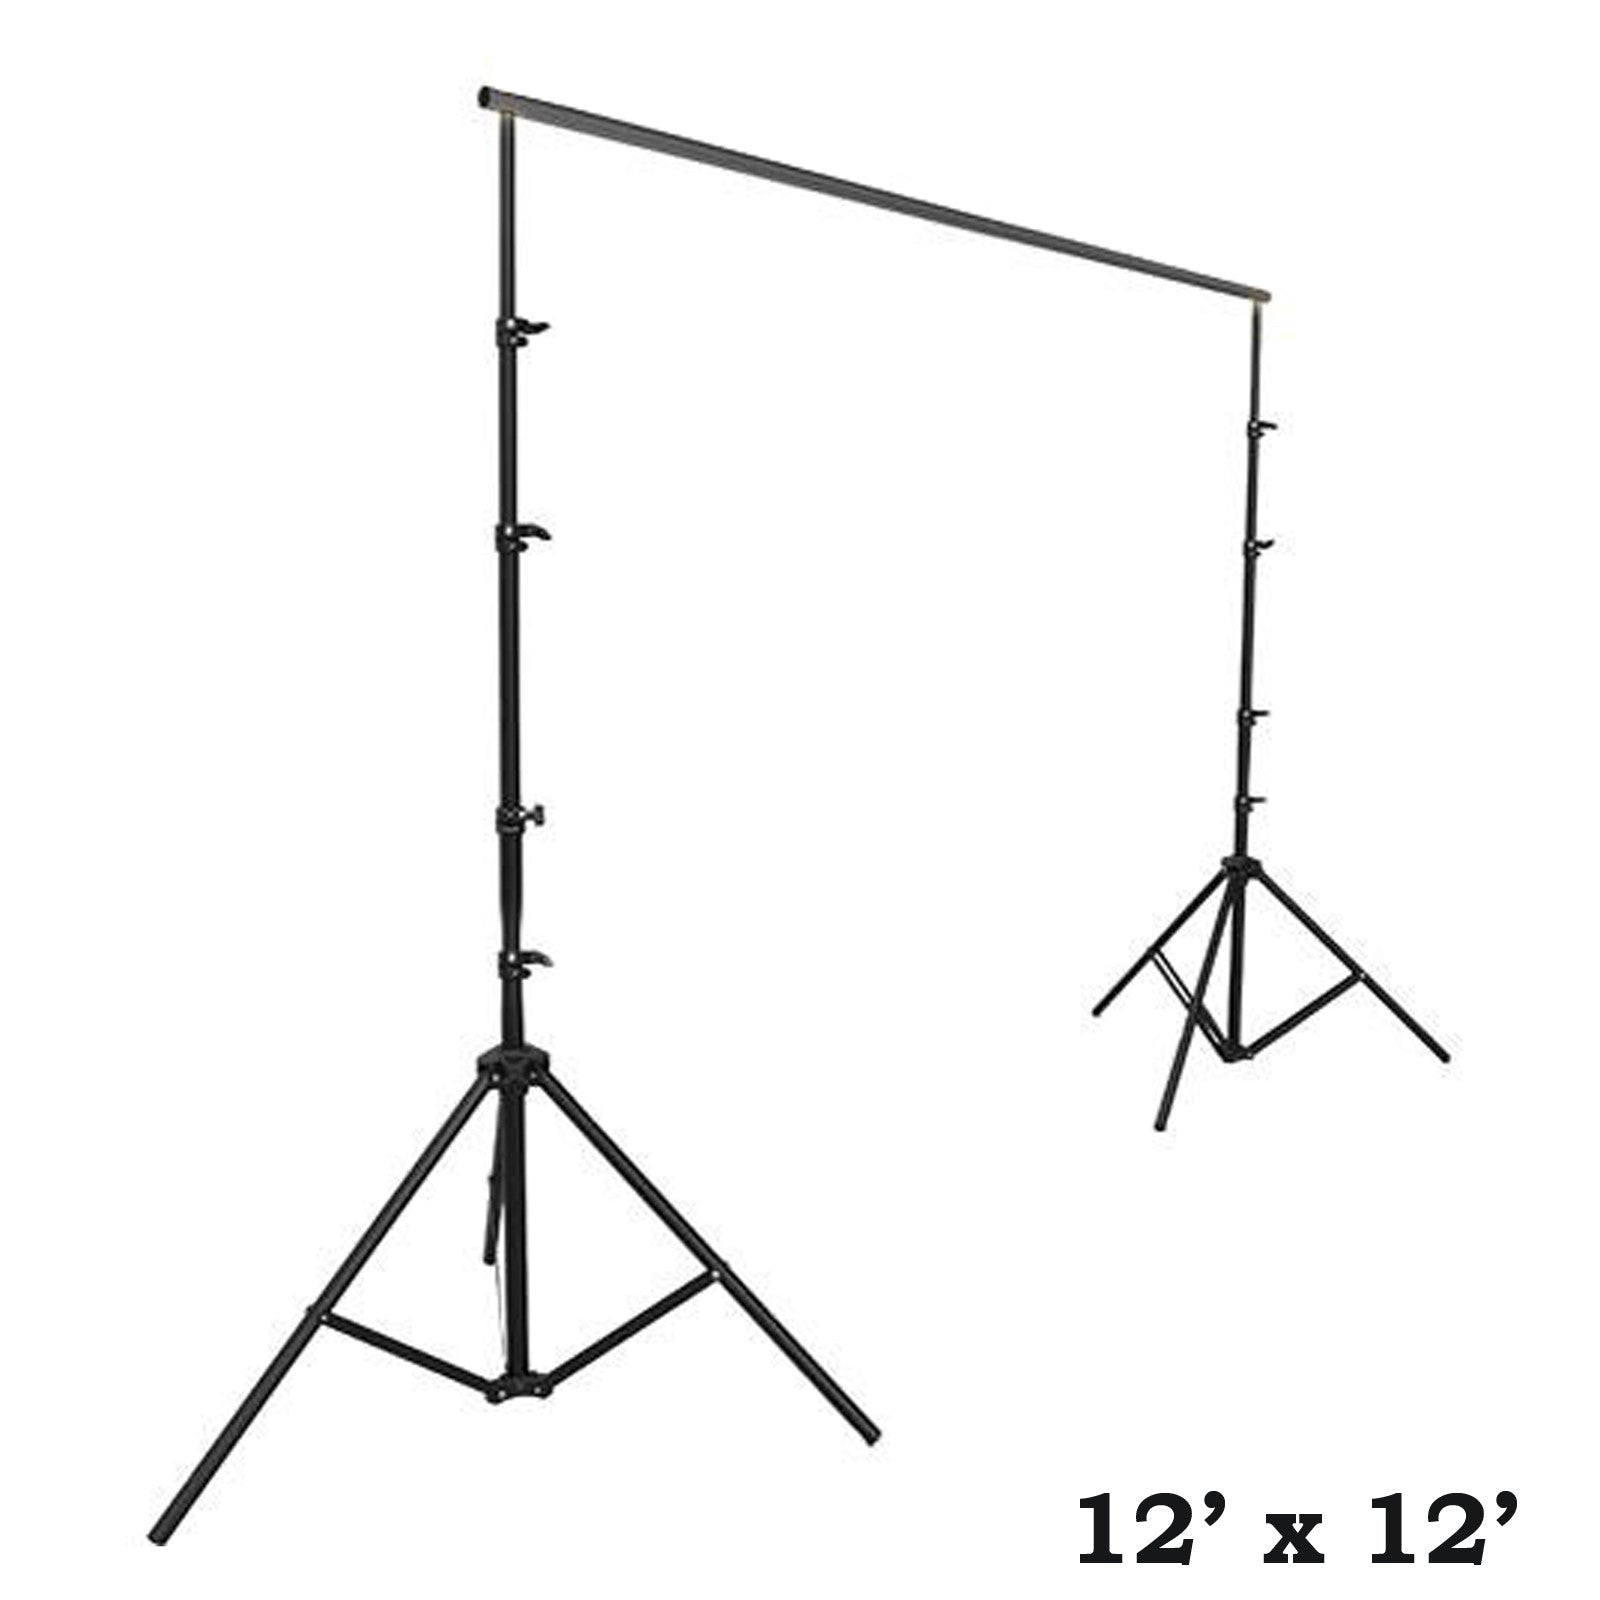 pipe kit systems backdrop drapes and of unique diy galery kits acpfoto drape